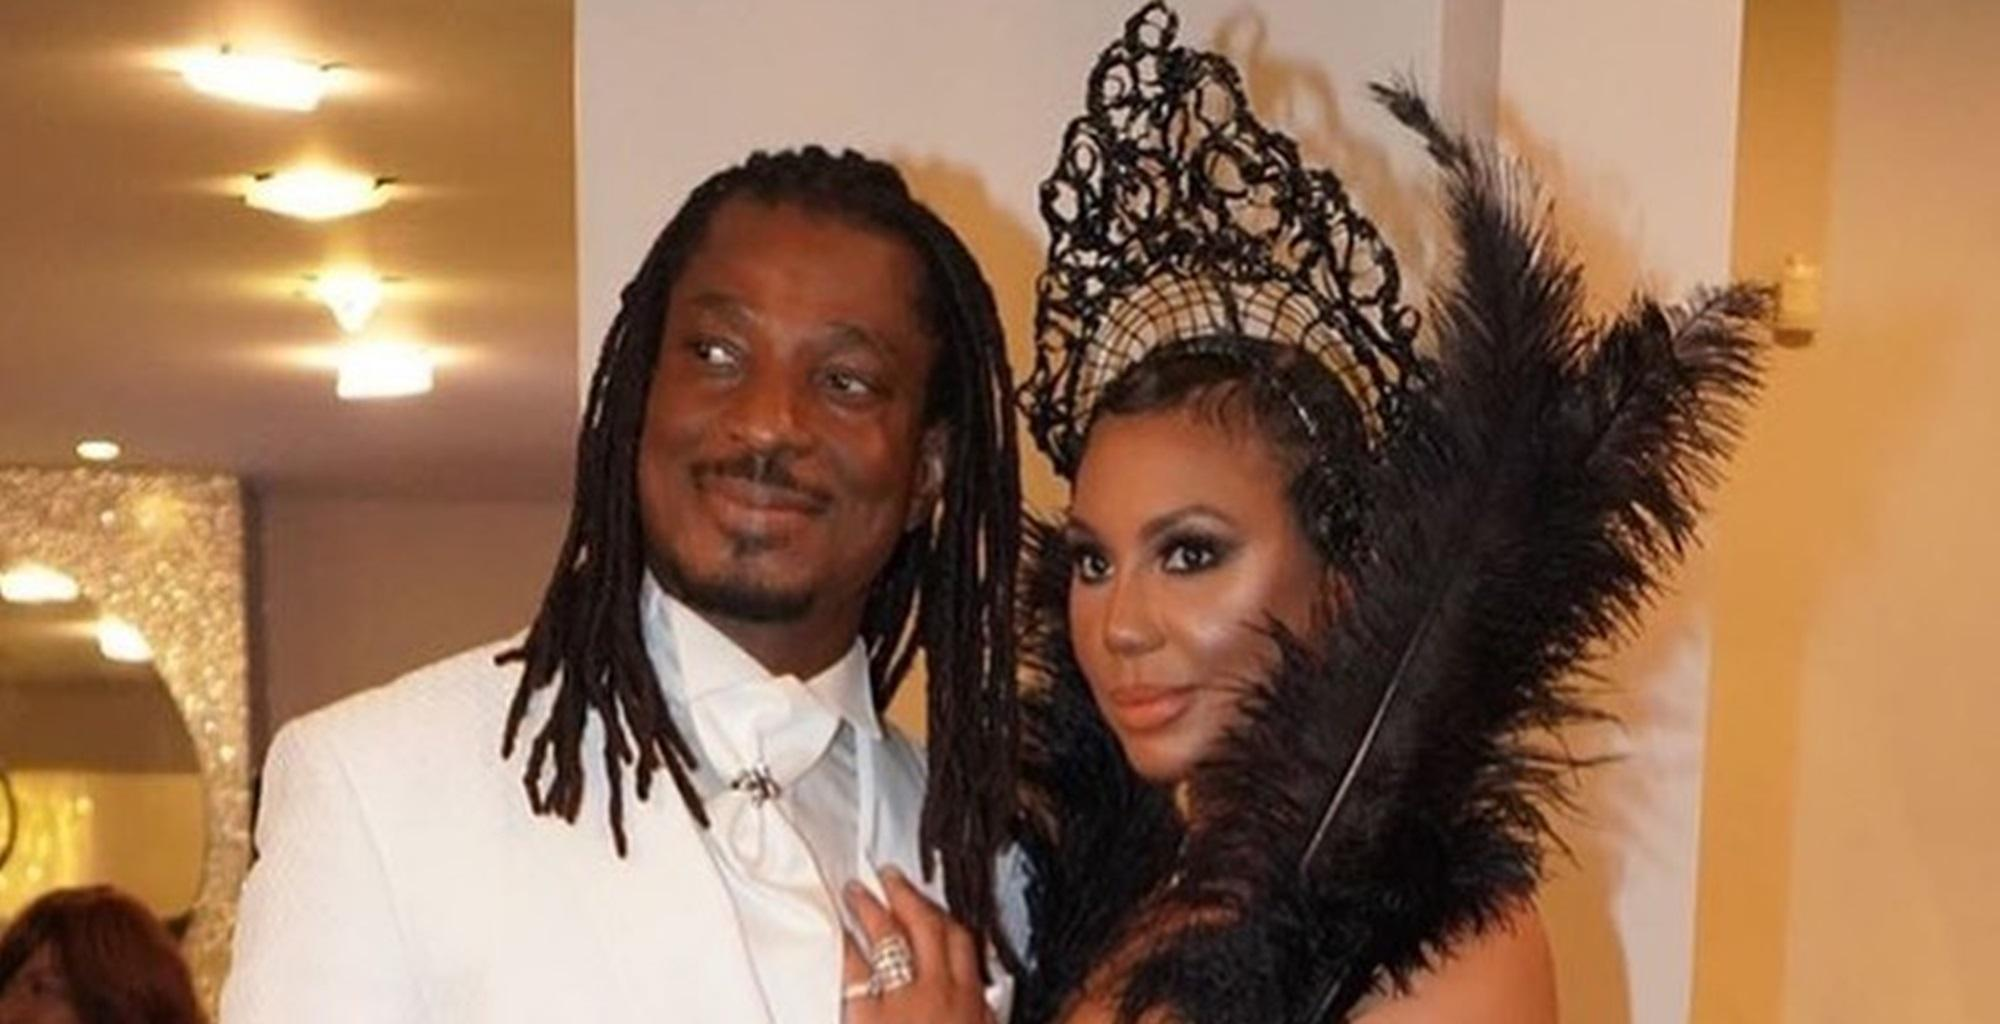 David Adefeso Tells Tamar Braxton Welcome To His Family With This Beautiful Declaration Of Love